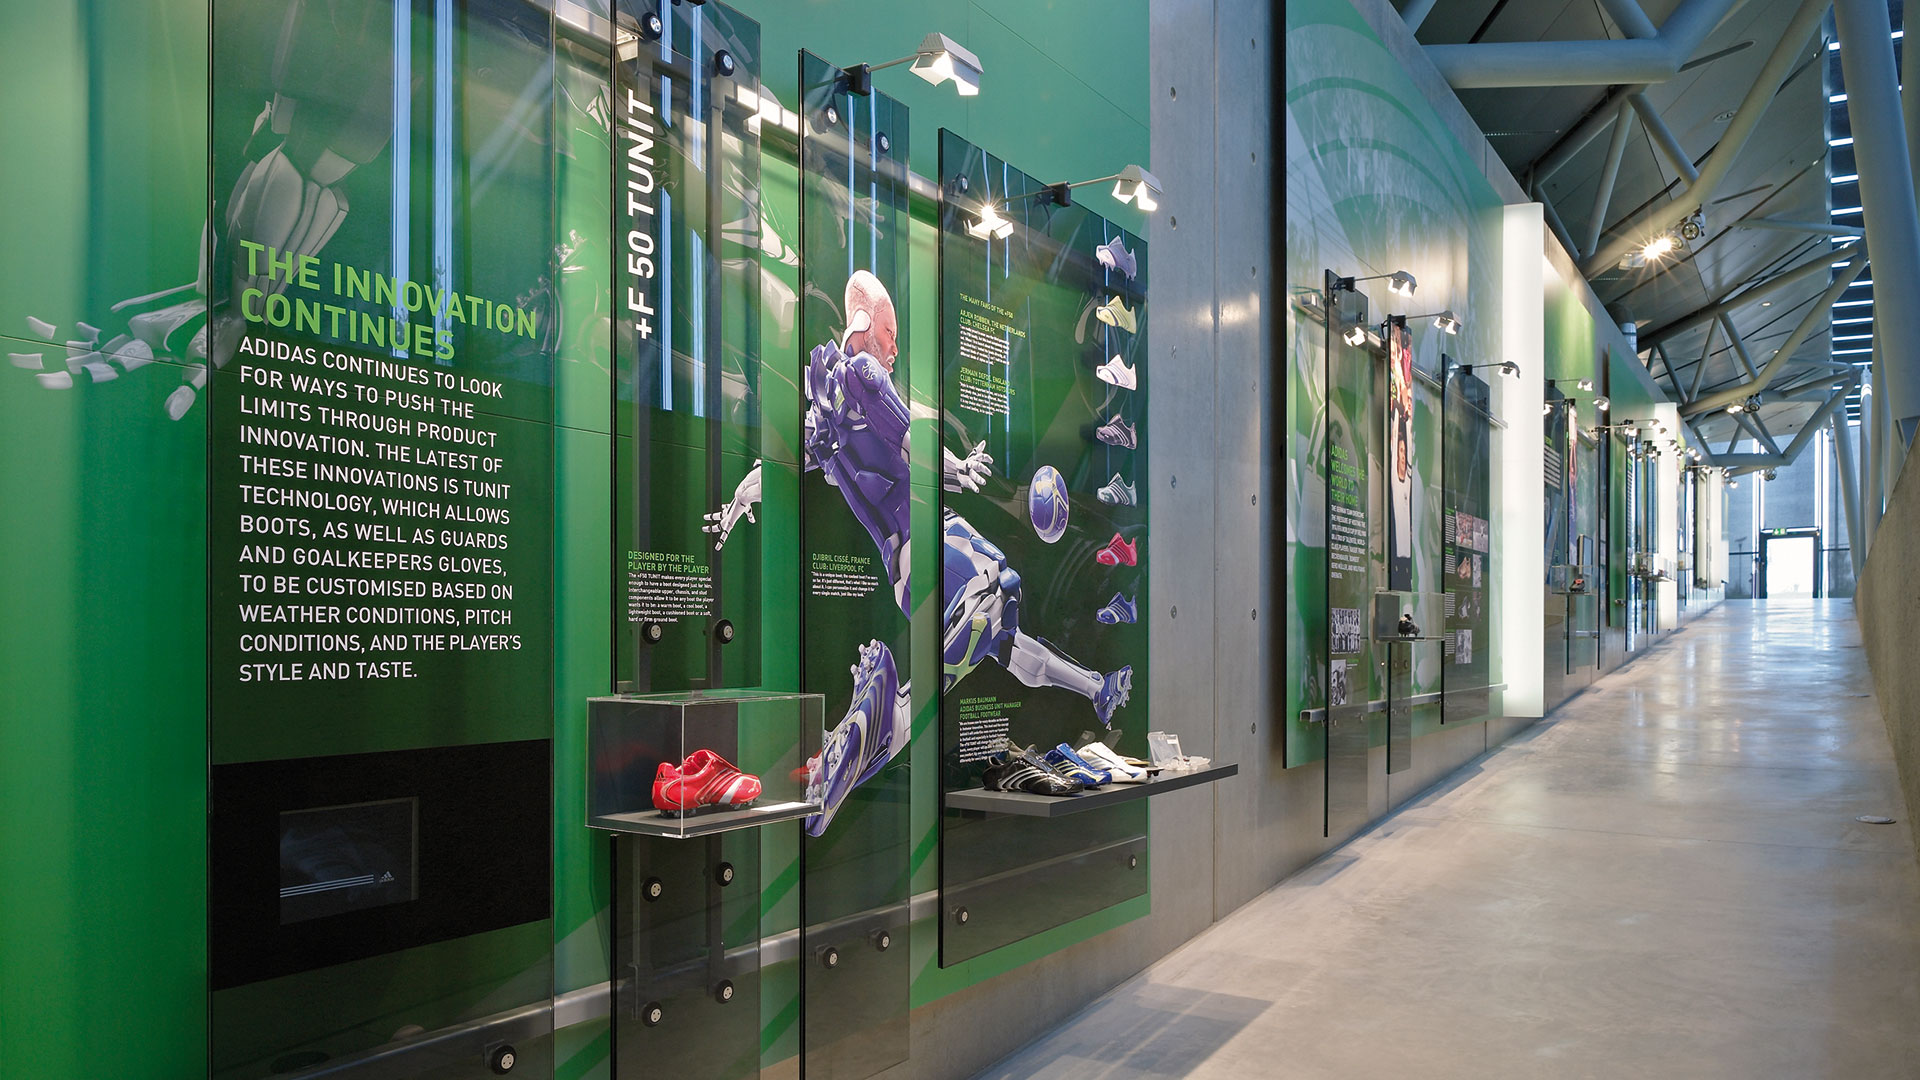 Dart stages the Walk of Fame 2007 exhibition for adidas